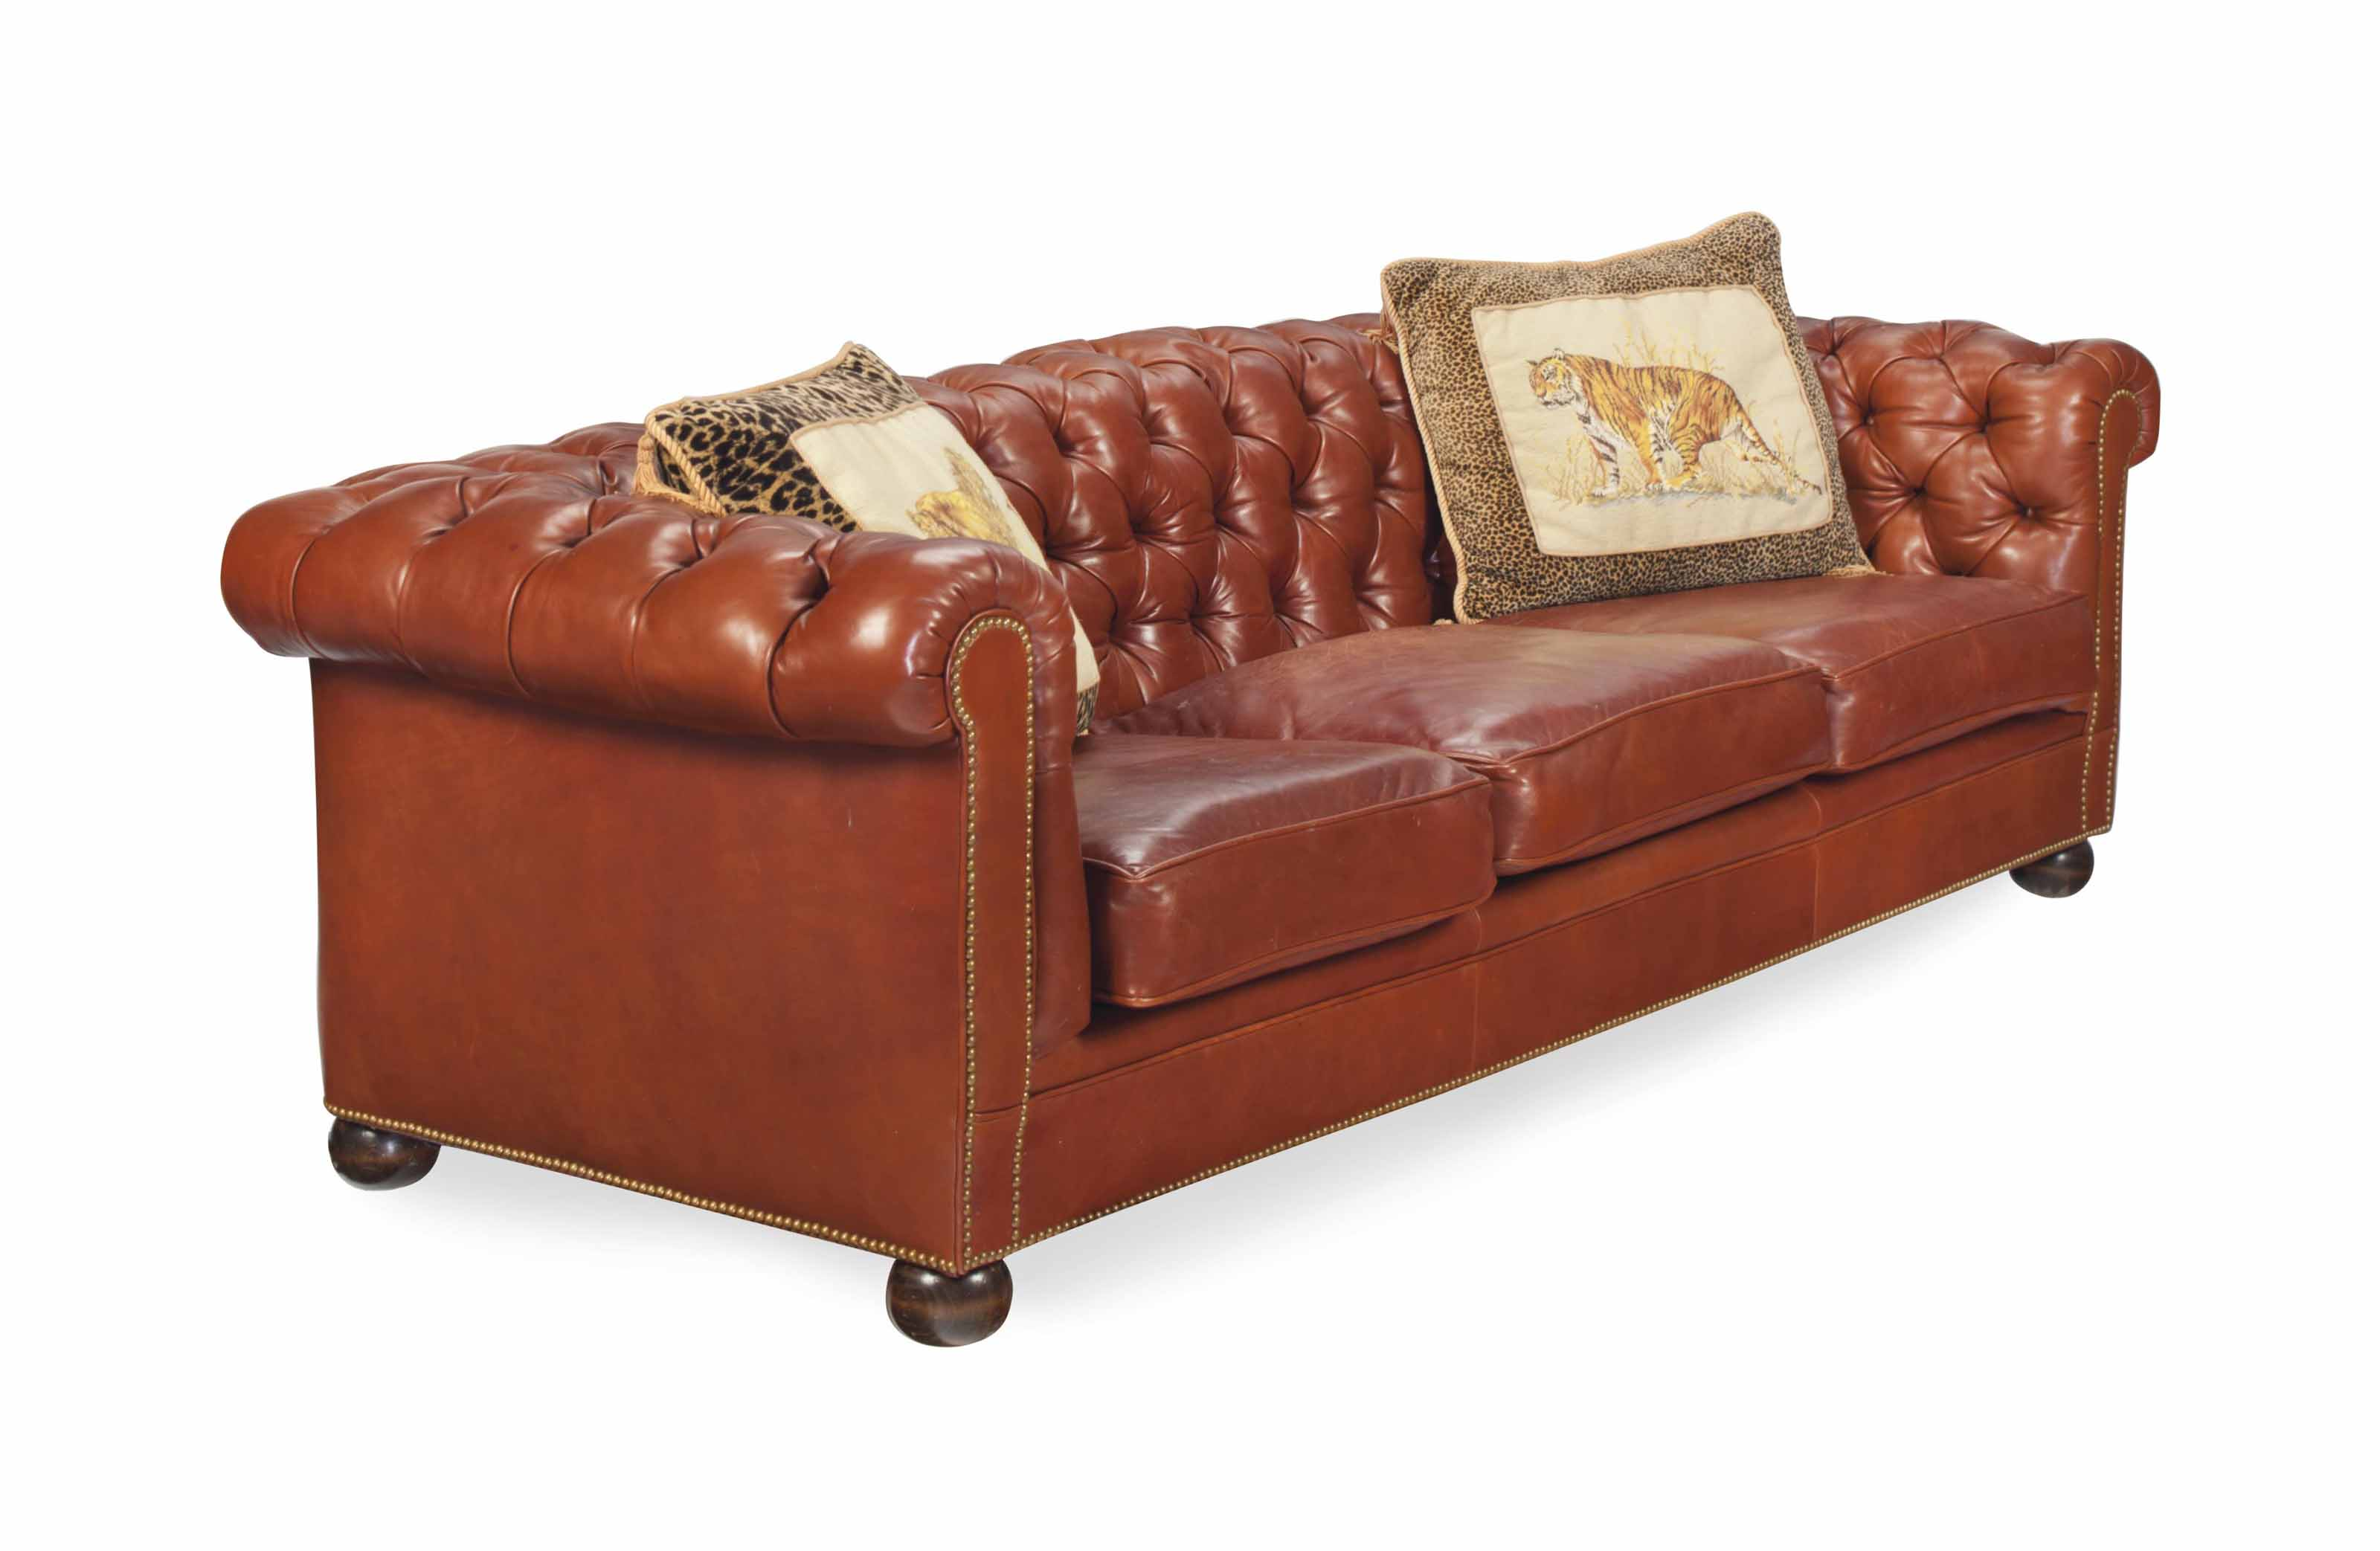 A BROWN LEATHER-UPHOLSTERED BUTTON-TUFTED SOFA,